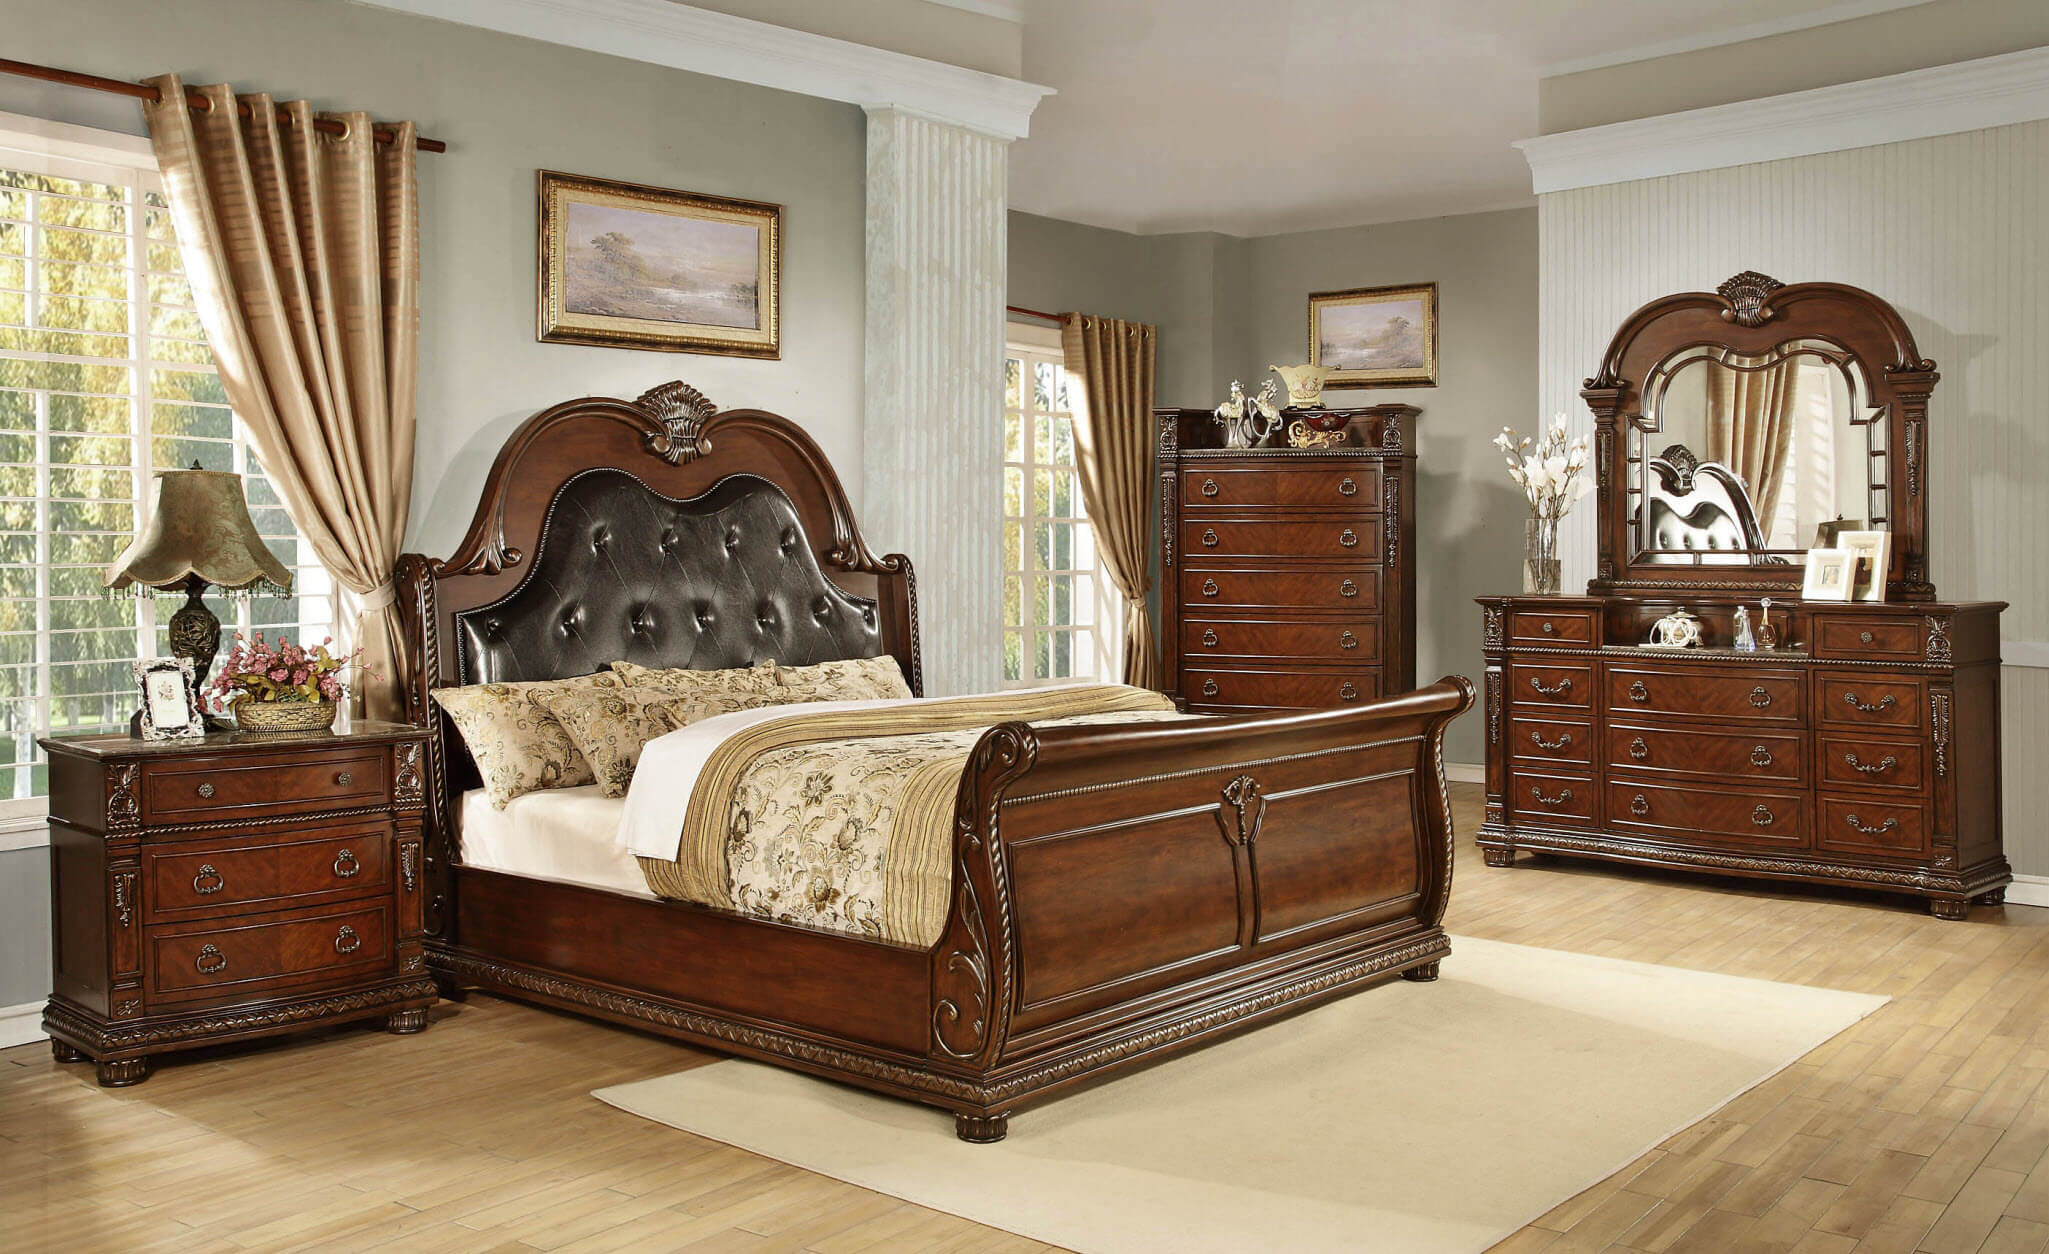 Palace Marble Top Bedroom Set | Bedroom Furniture Sets